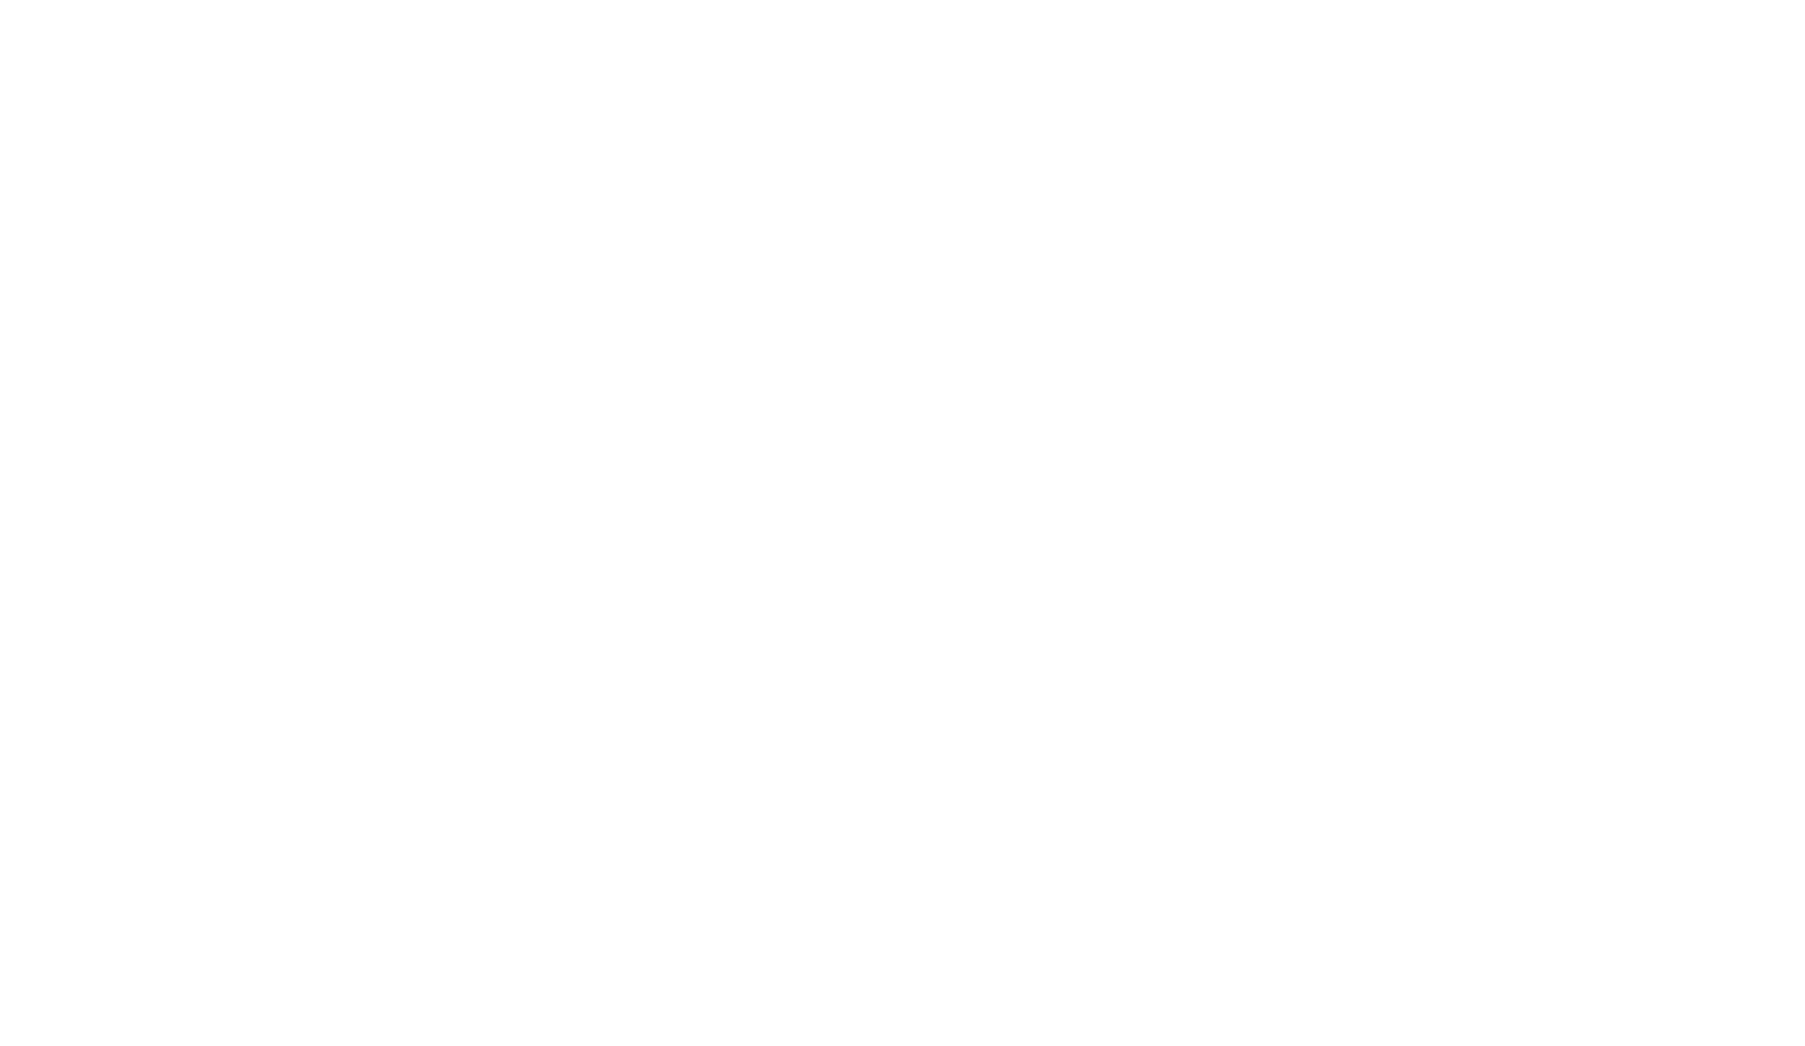 Movement Dance School